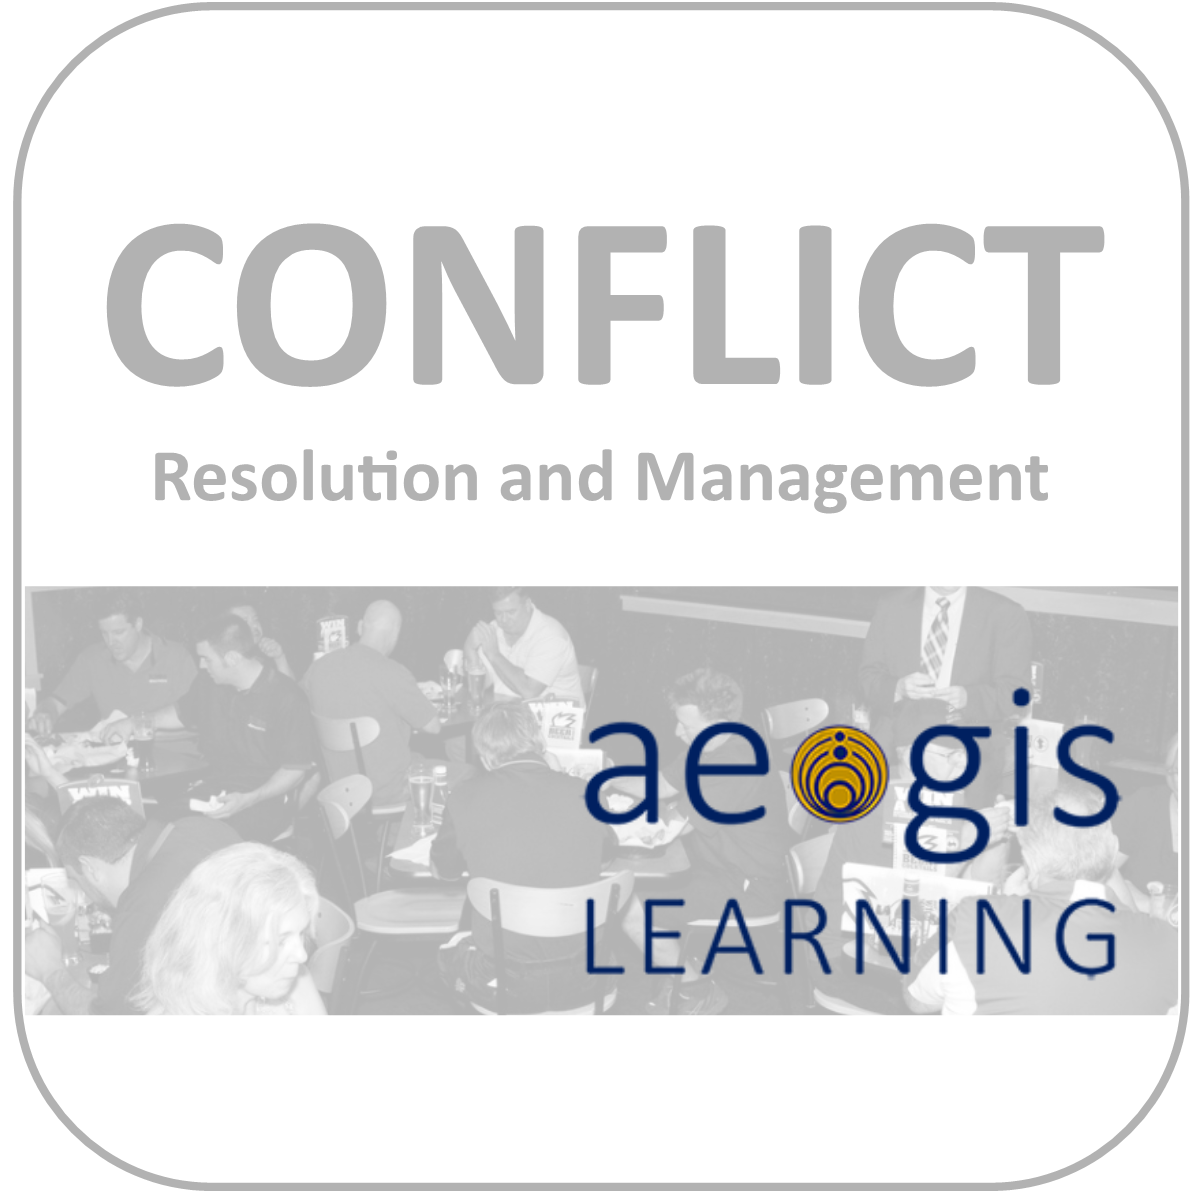 Conflict Resolution and Magement Workshop from Aegis Learning